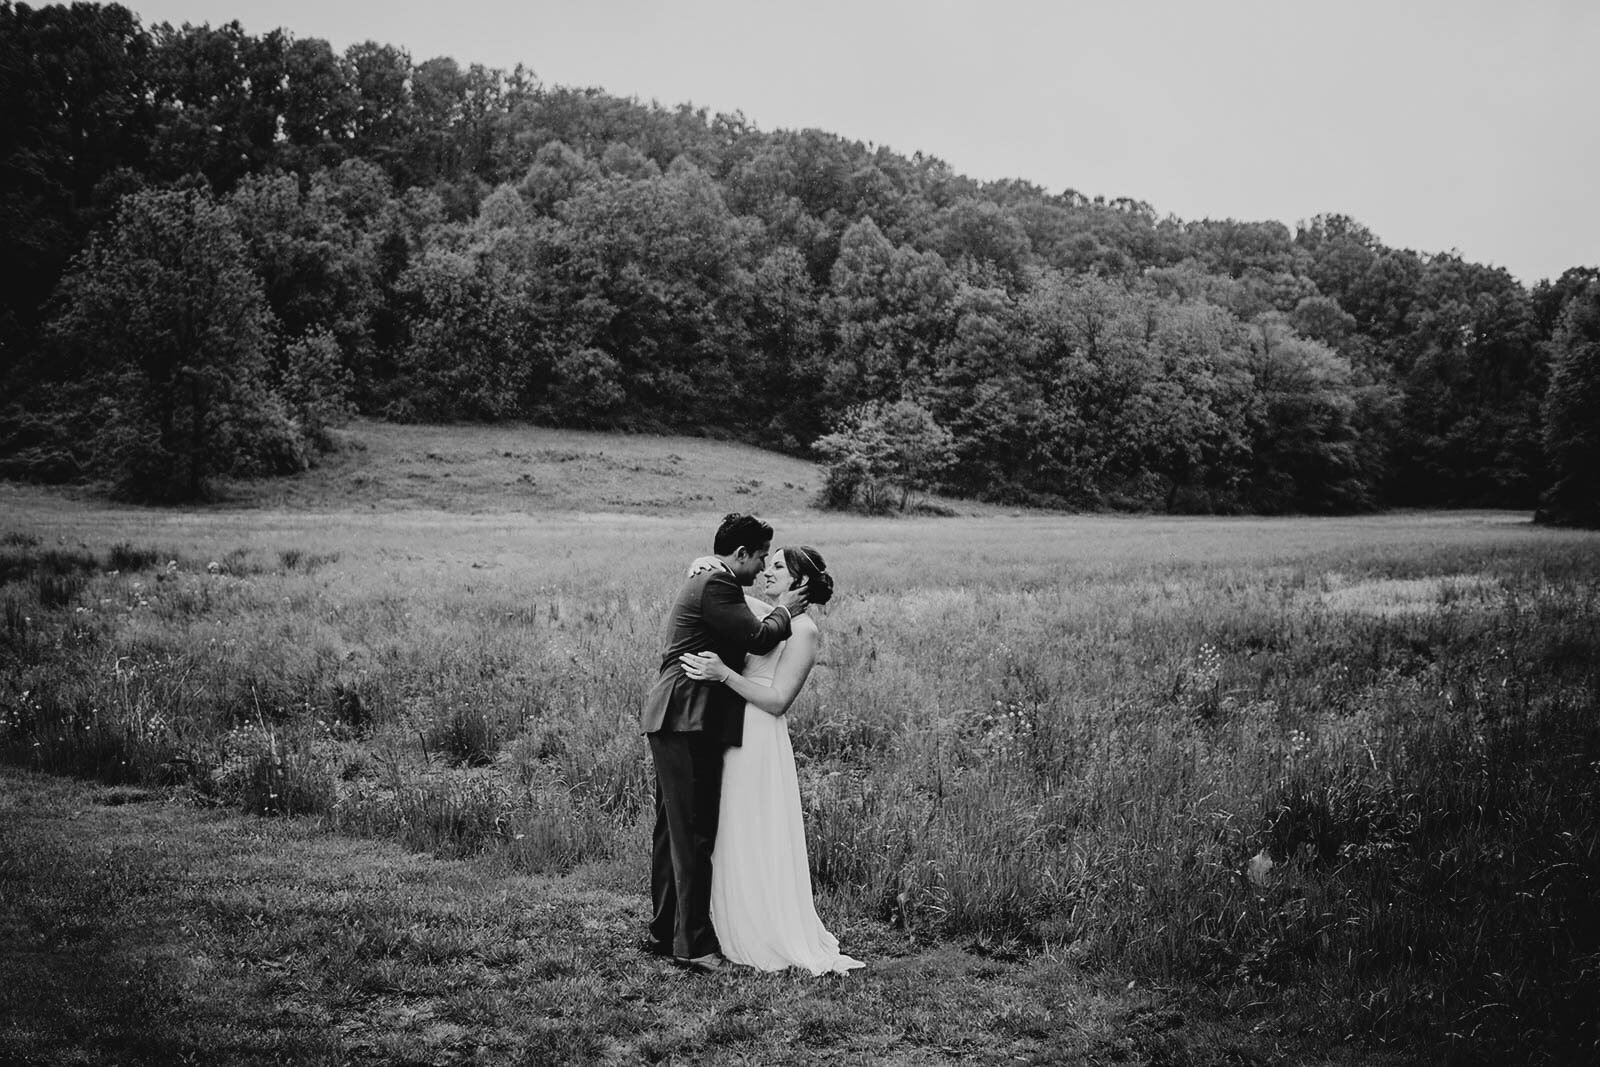 wedding at historic shady lane by Philadelphia wedding photographer Bobbi Phelps